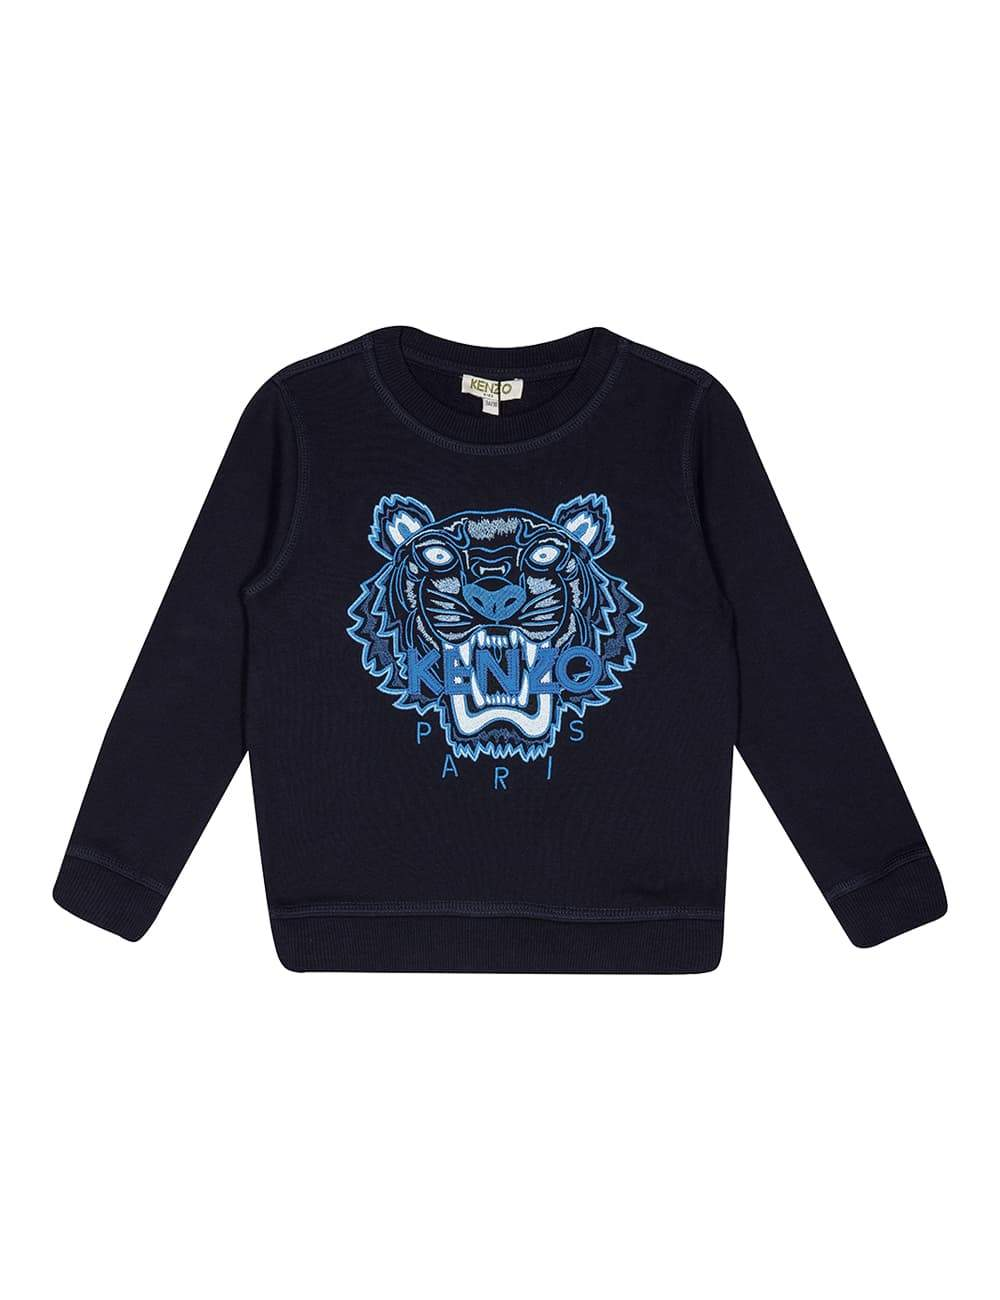 Kenzo - Edwin Sweatshirt Tiger JB Per2 For Boys, Navy